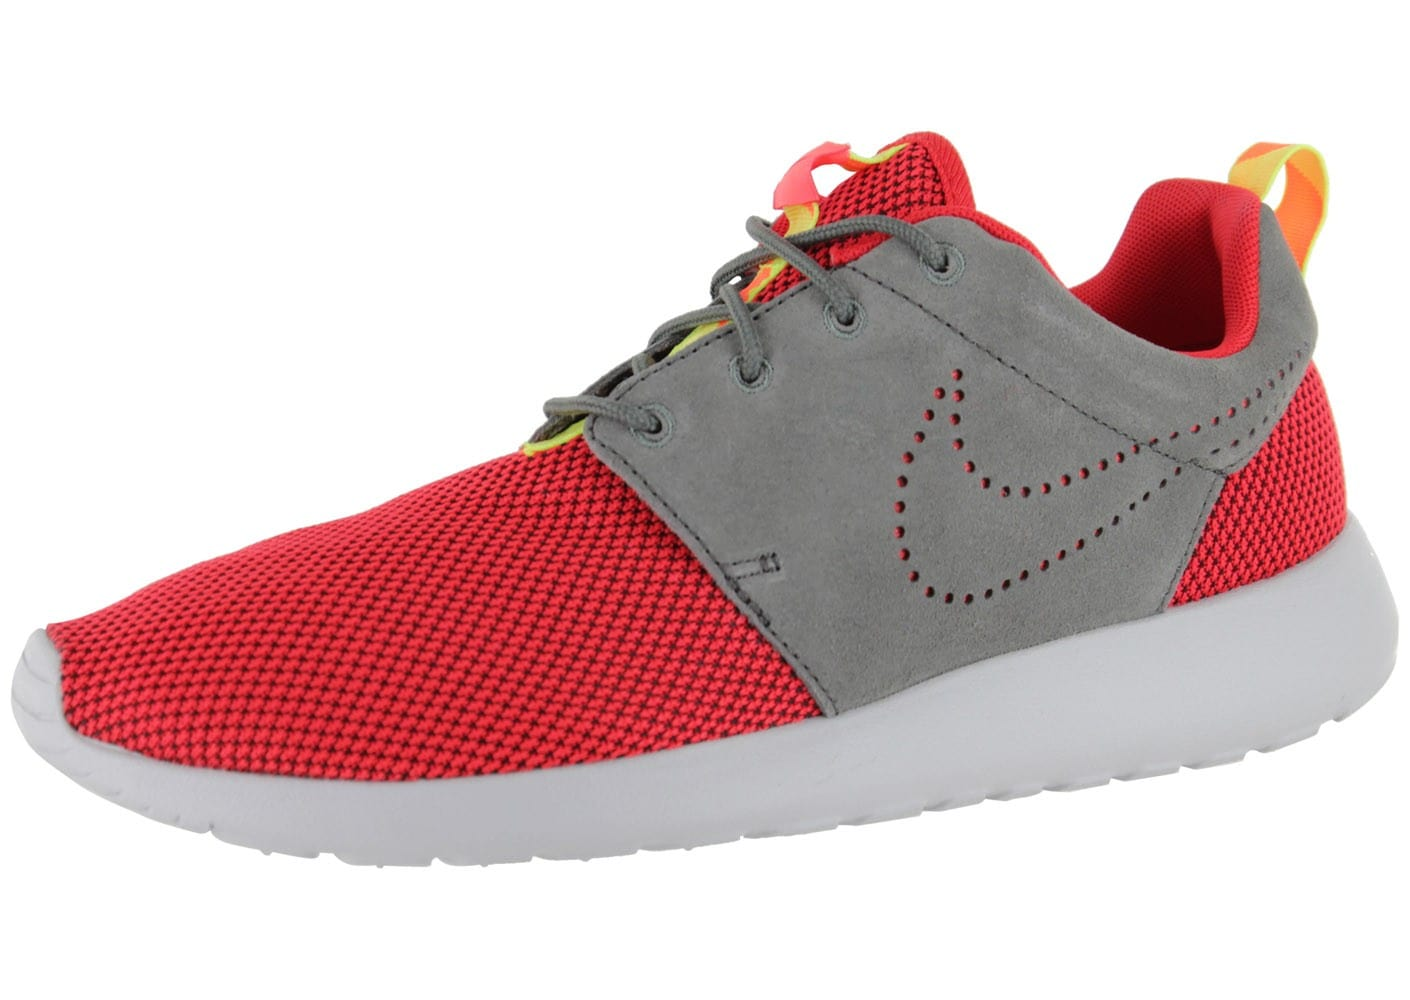 Chaussures Roshe Chausport Homme Rouge Baskets Nike Run bvfgyY76